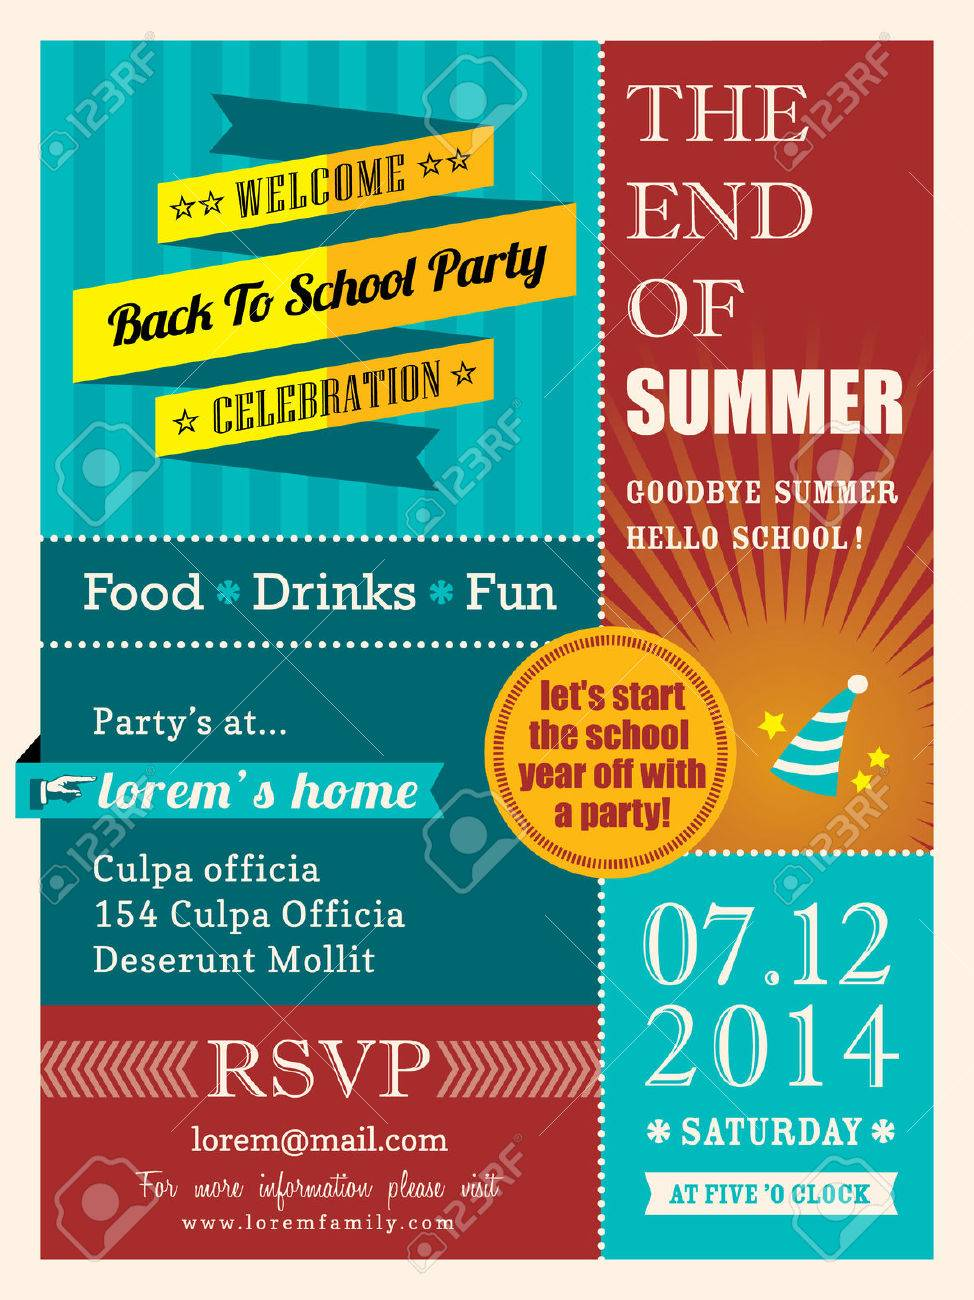 Poster design layout - Free Event Poster Design Templates Download